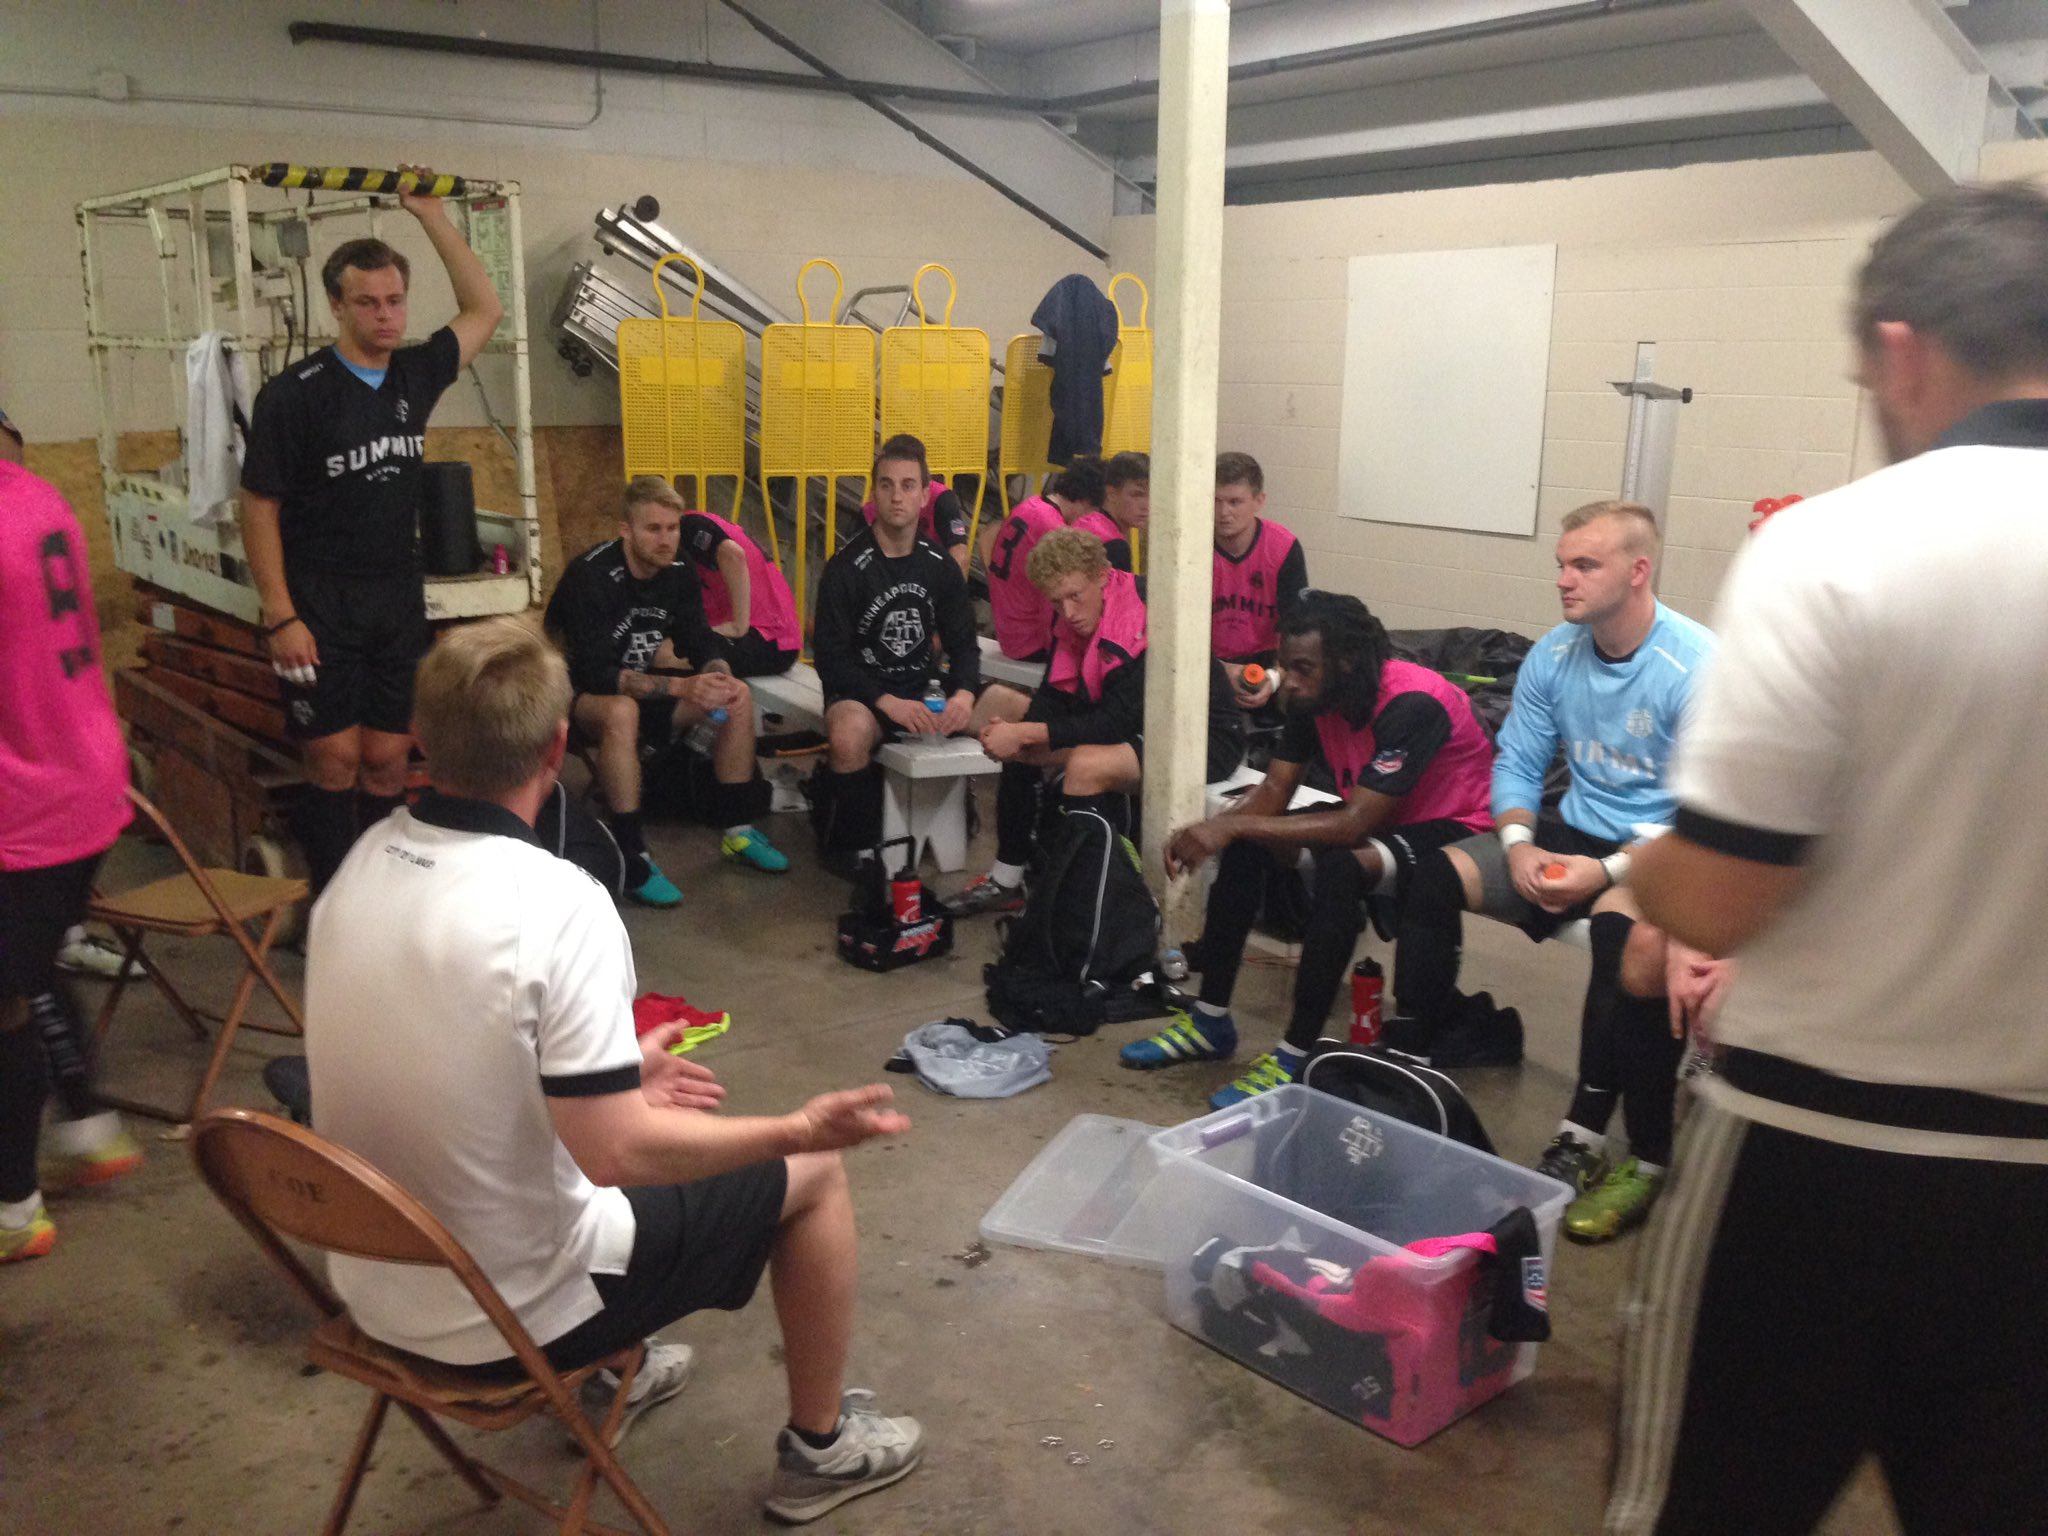 City co-head coach Keith Kiecker addresses his team at halftime. Image courtesy of Minneapolis City SC.